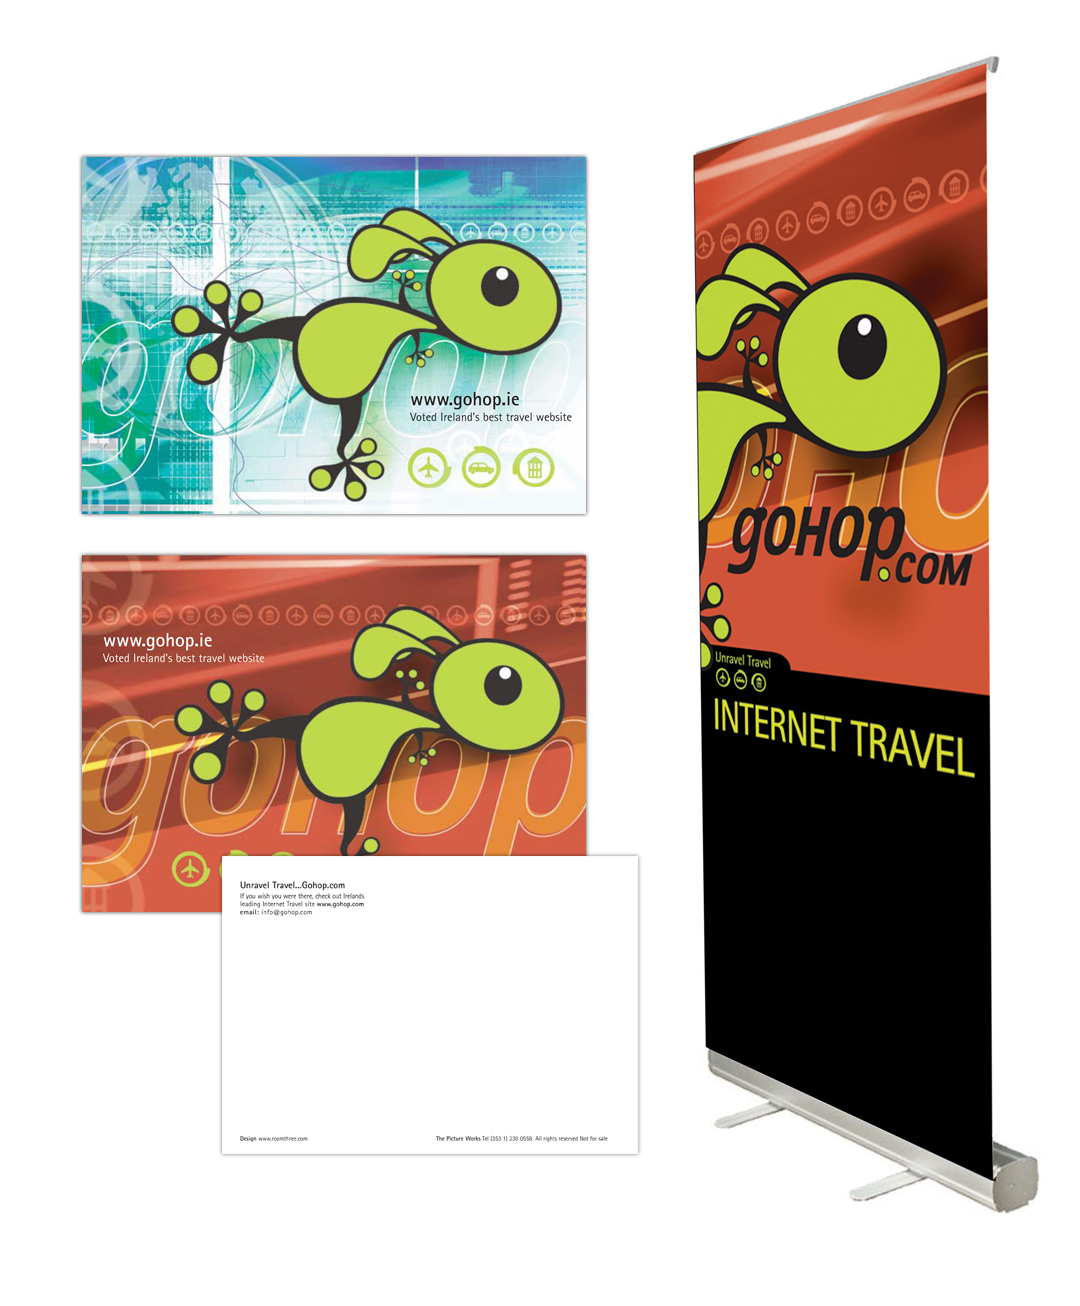 gohop_postcards_and_banner